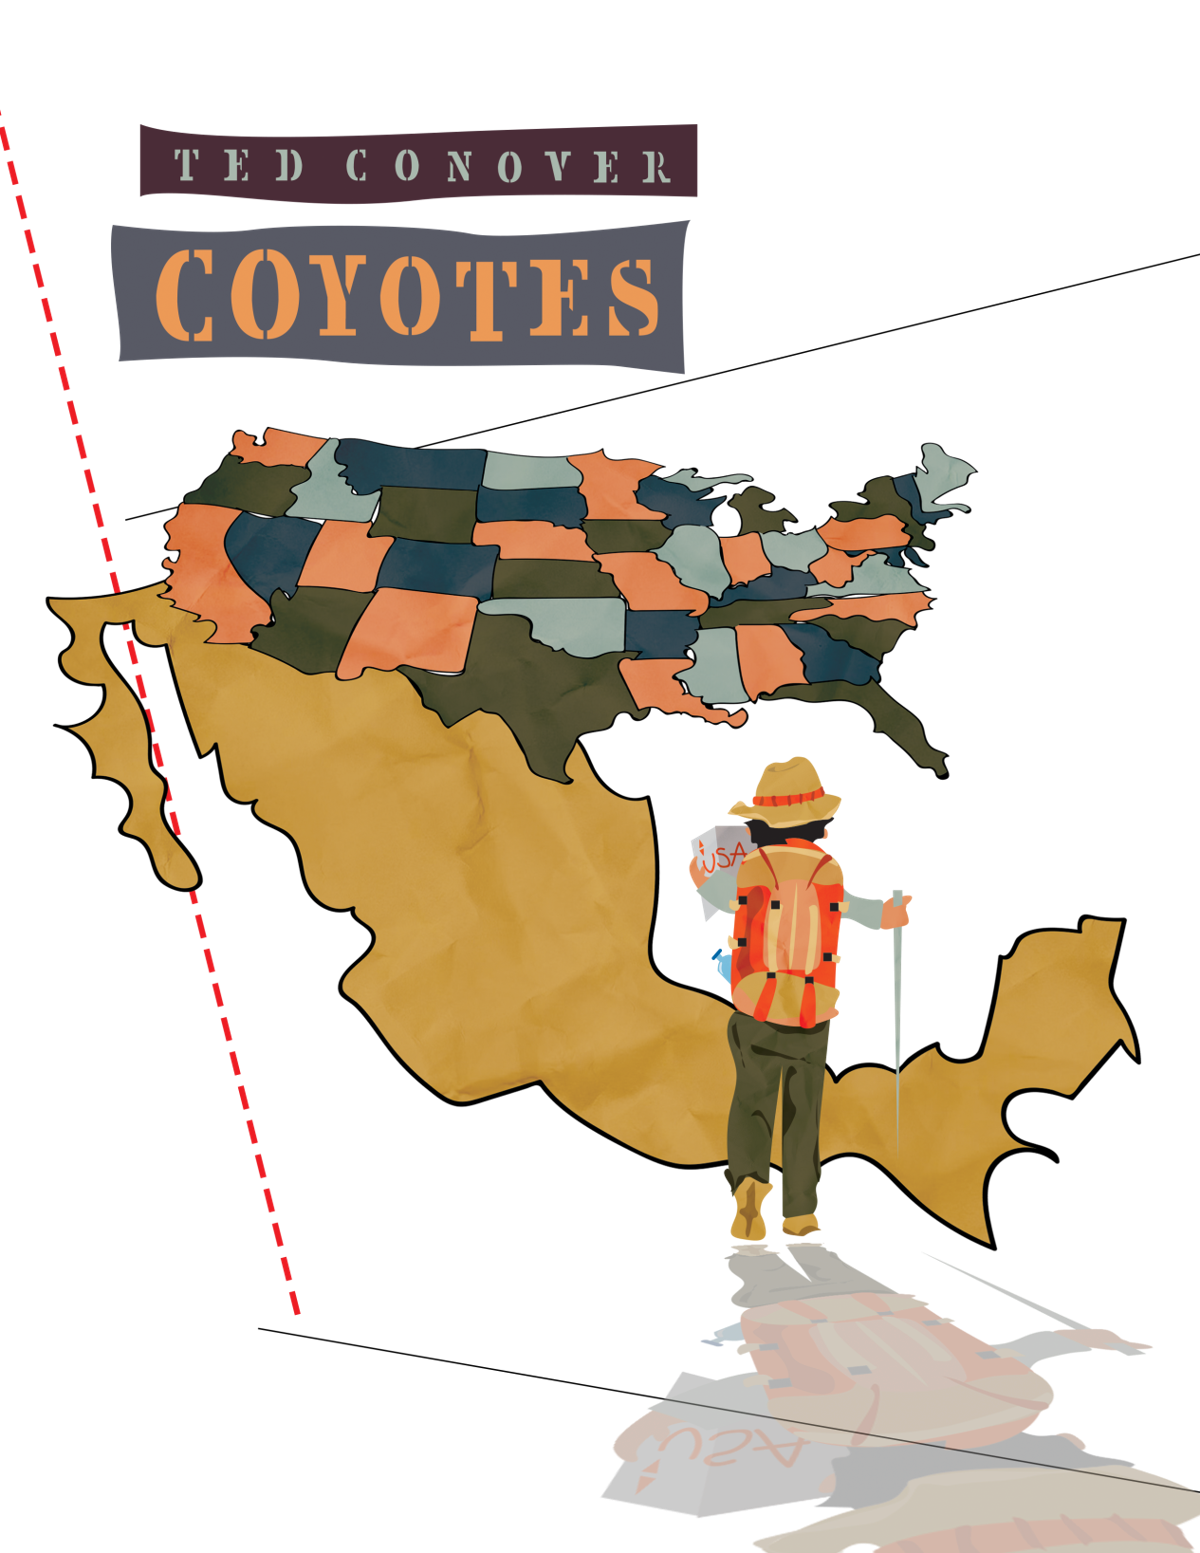 """Ted Conover's """"Coyotes"""" Still Echoes Today"""